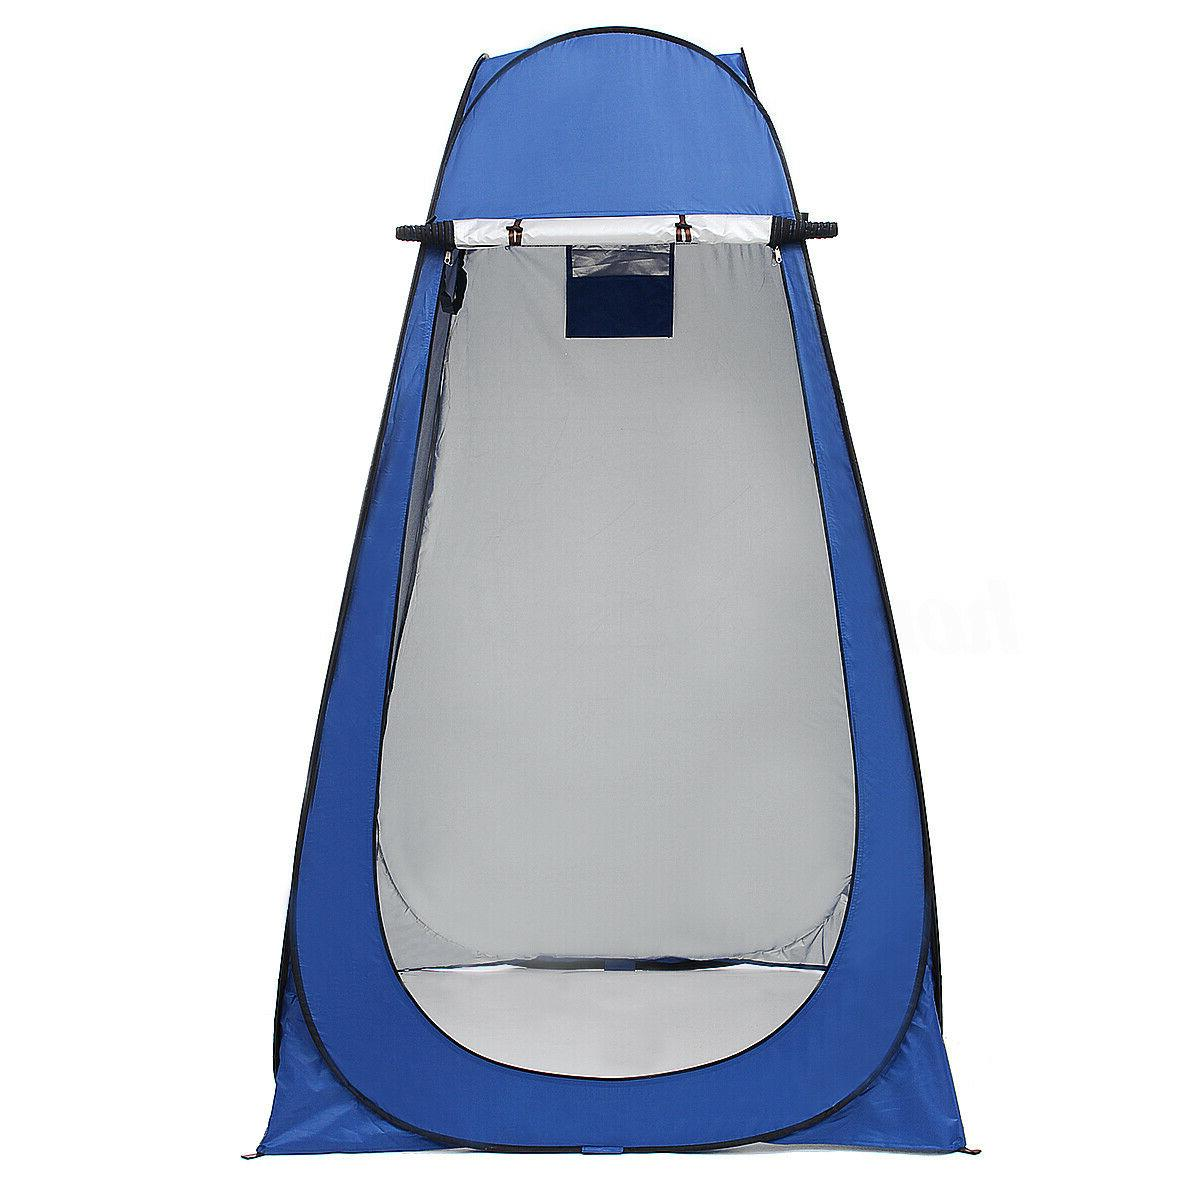 Portable Outdoor Shower Tent Toilet Privacy Changing